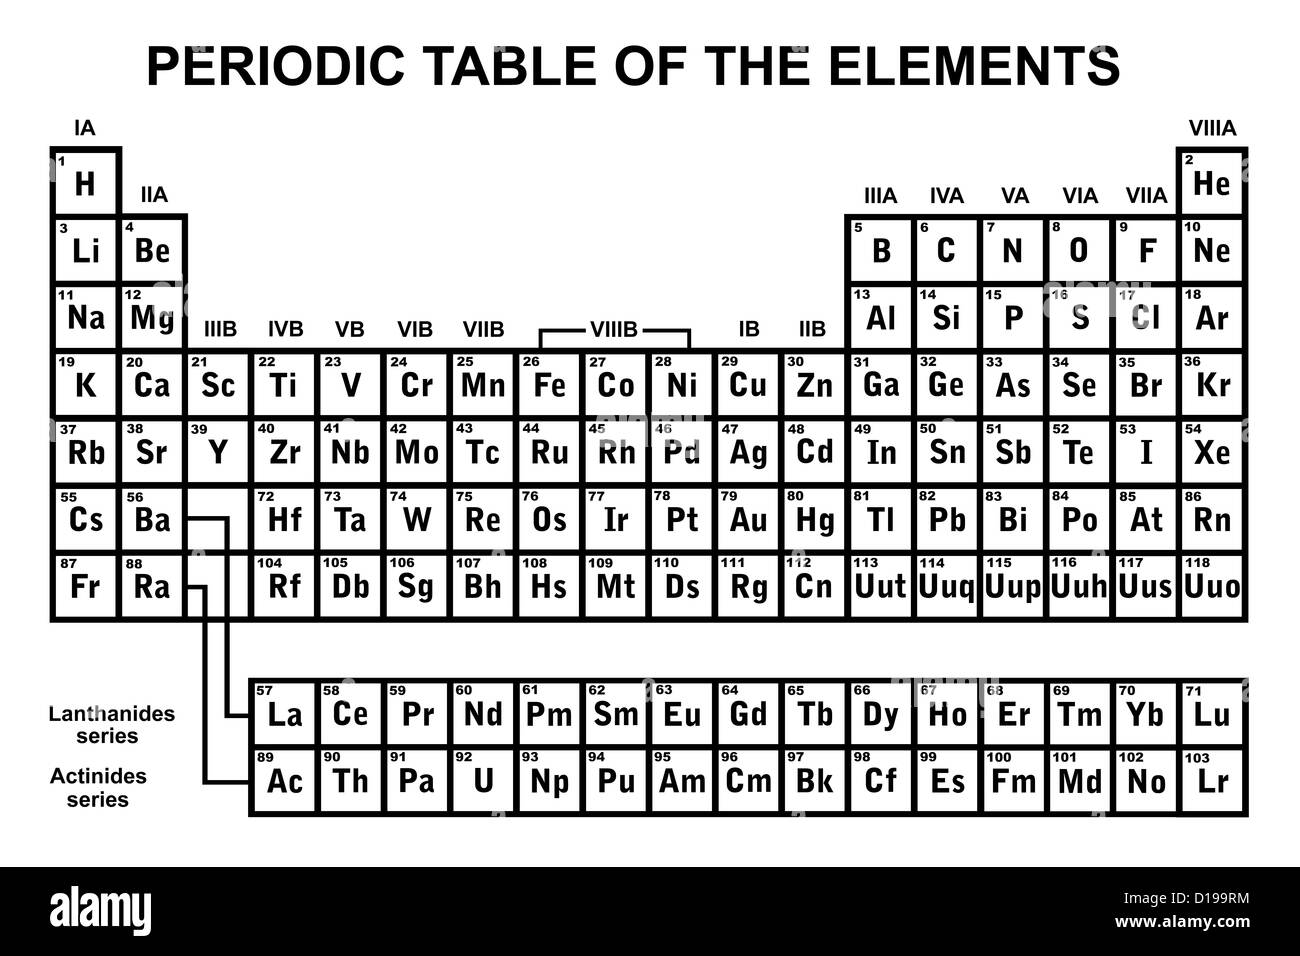 Periodic table of the elements isolated stock photo royalty free periodic table of the elements isolated gamestrikefo Images